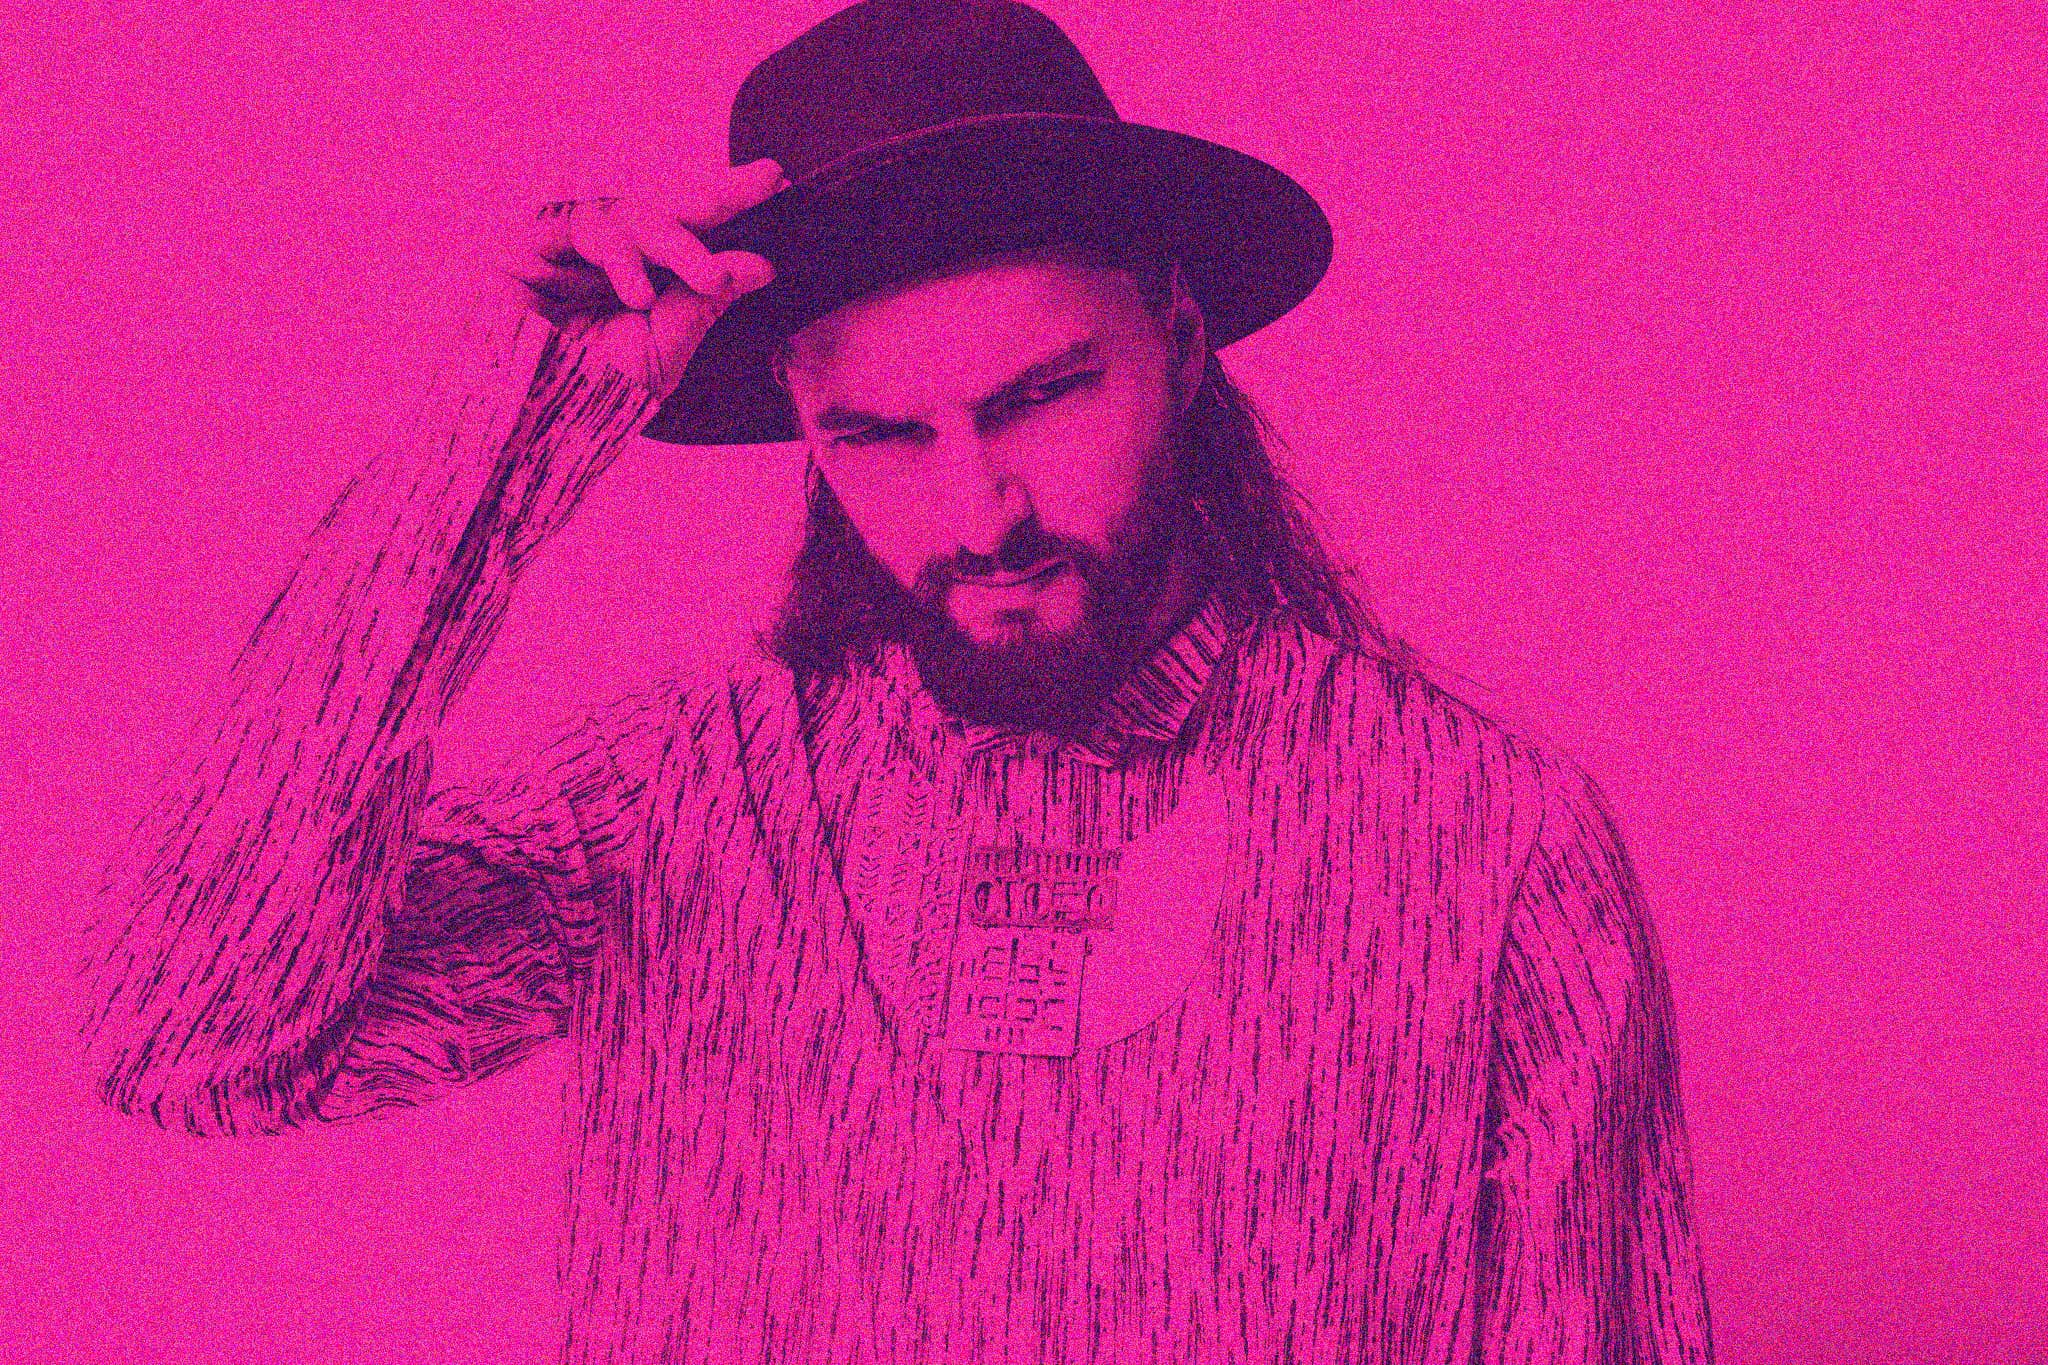 SALVATORE GANACCI – CONTEMPORARIES IN A BIG WAY